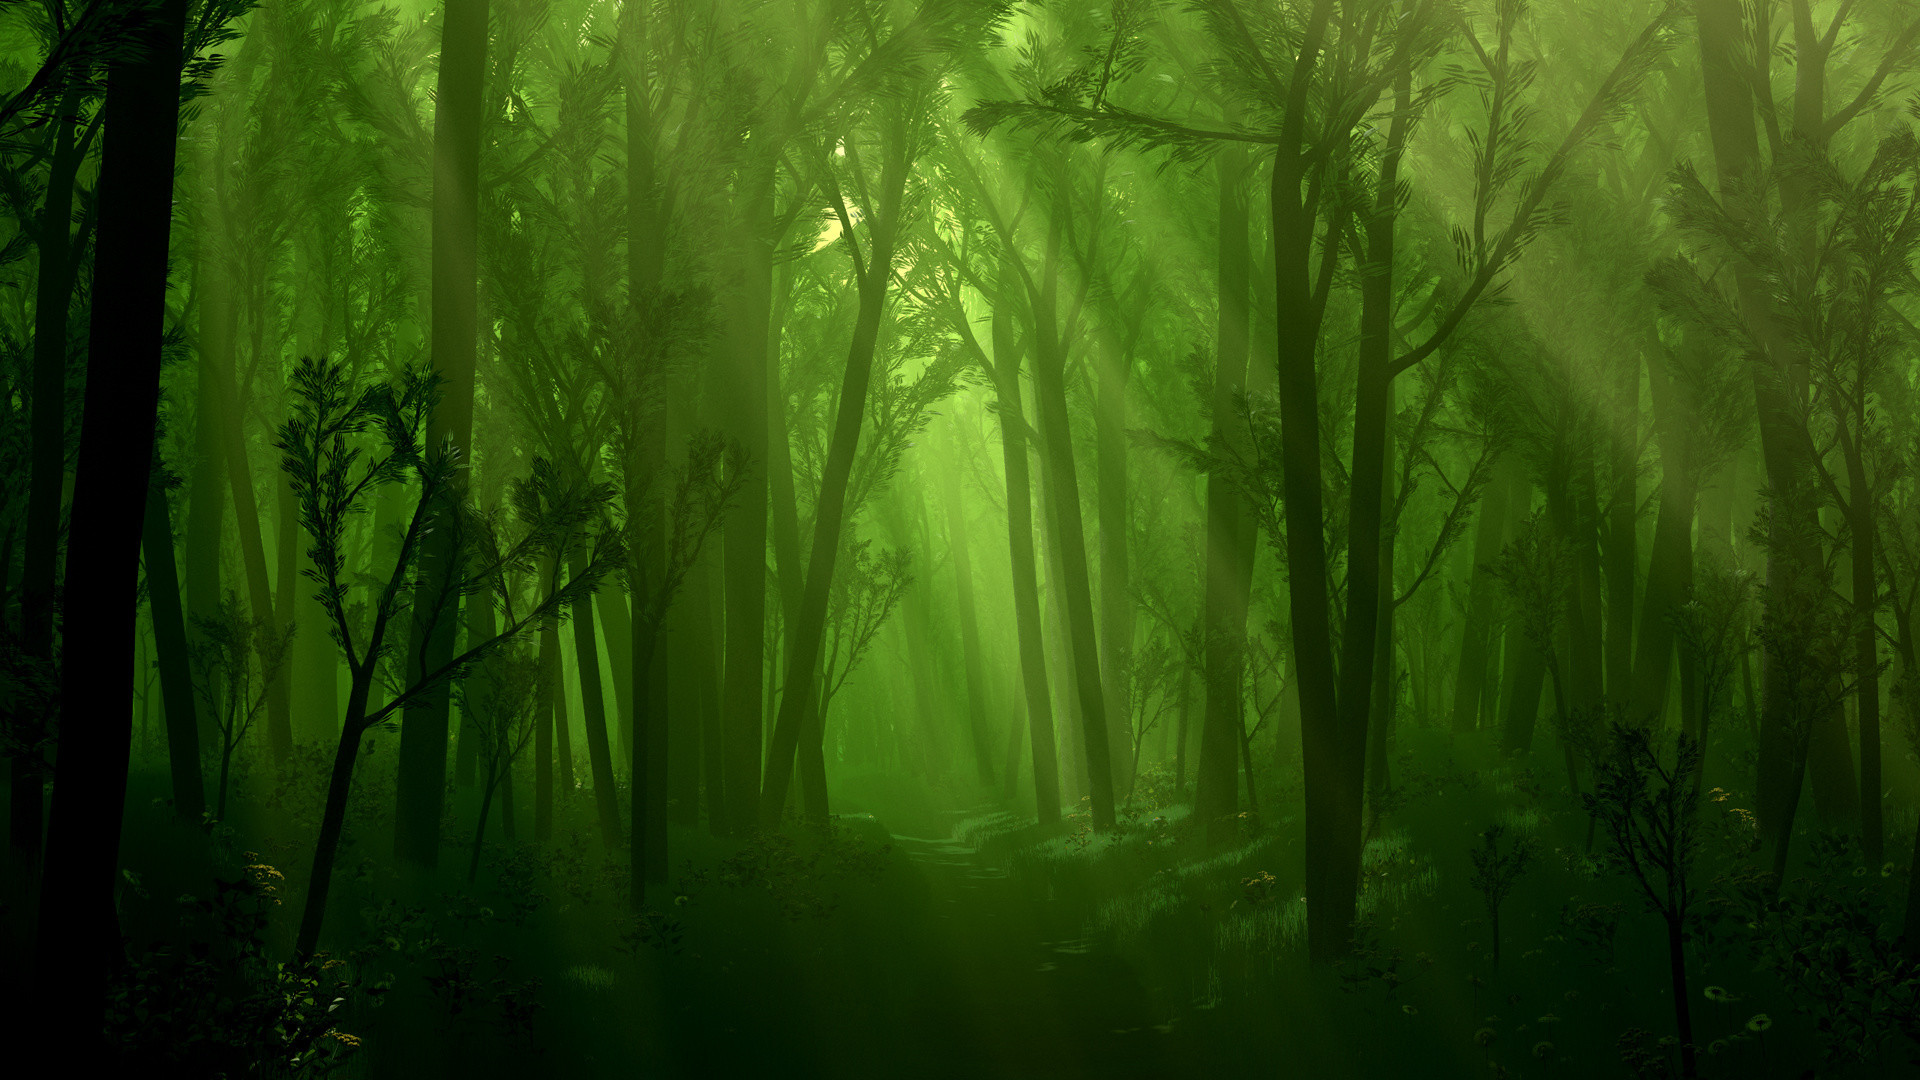 1920x1080 Fantasy Forest Backgrounds | Fantasy - Forest Wallpaper